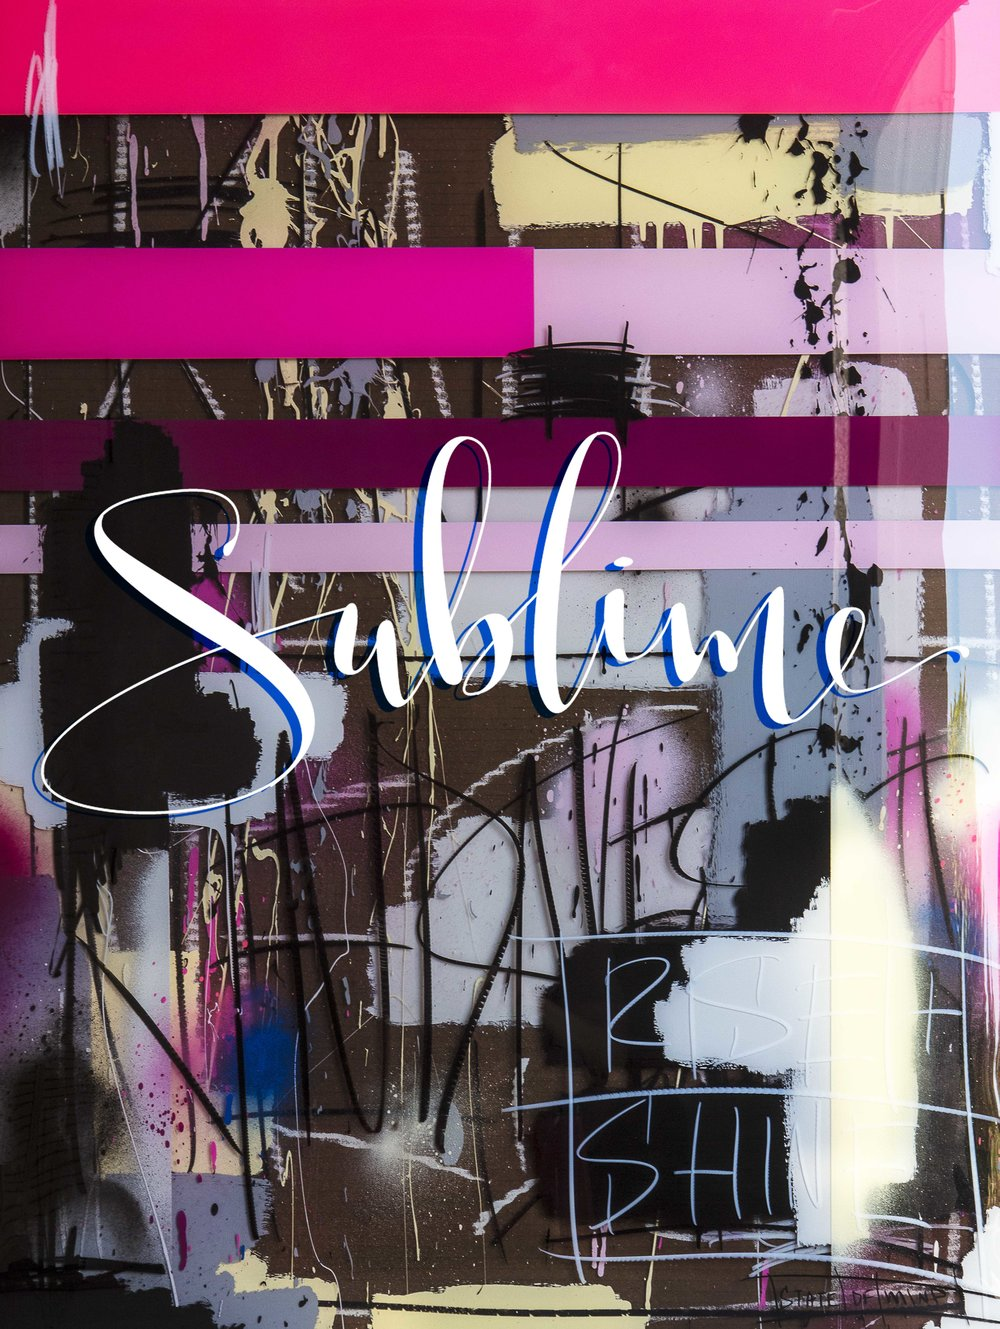 SUBLIME  AUG 3 - SEPT 21  see more